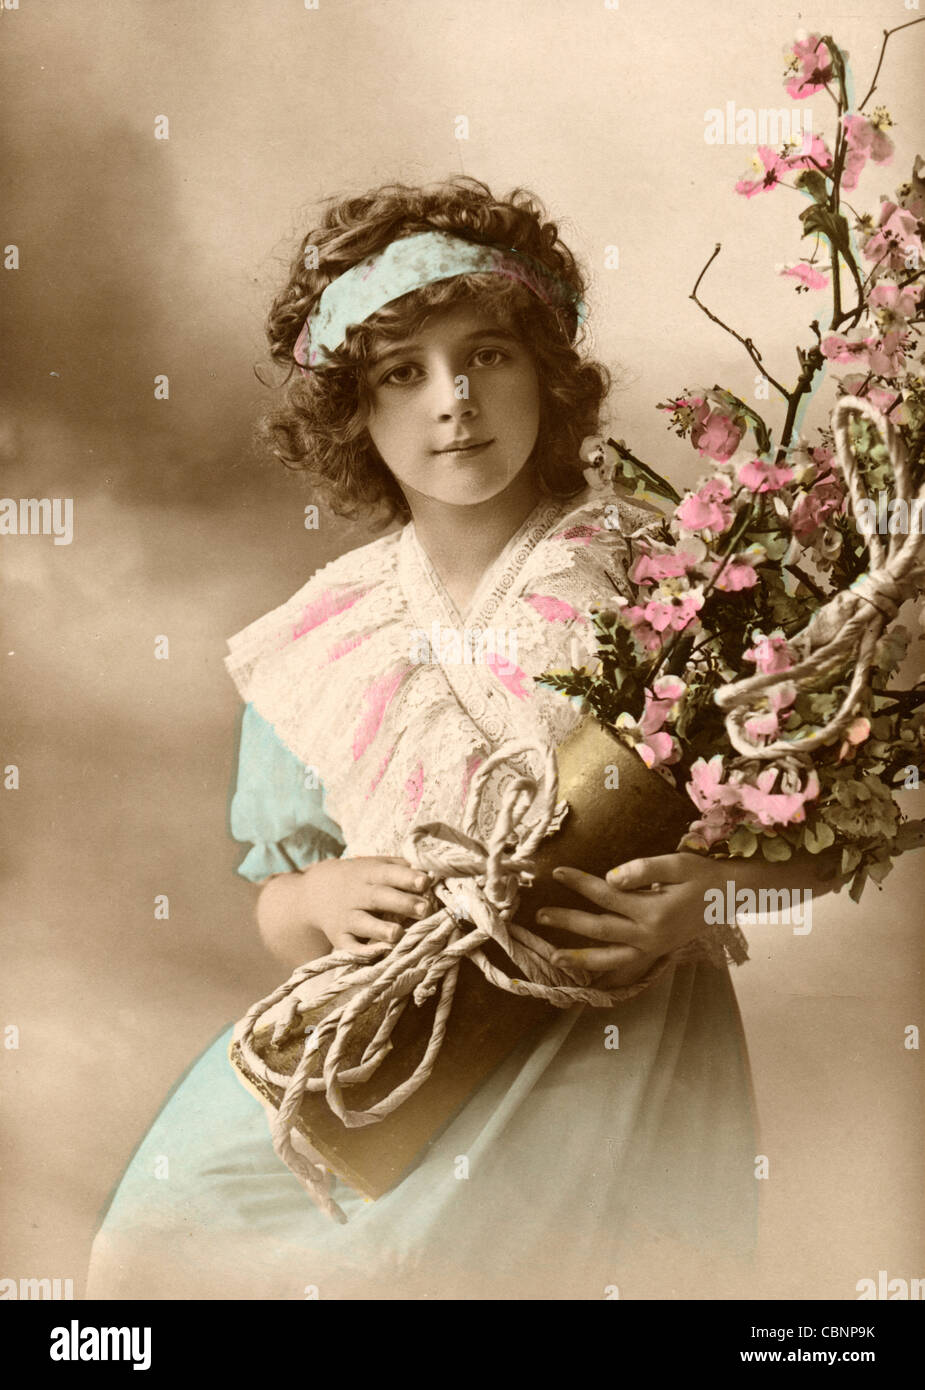 Little Girl with Large Flower Bouquet of Dogwood Blooms Stock Photo ...